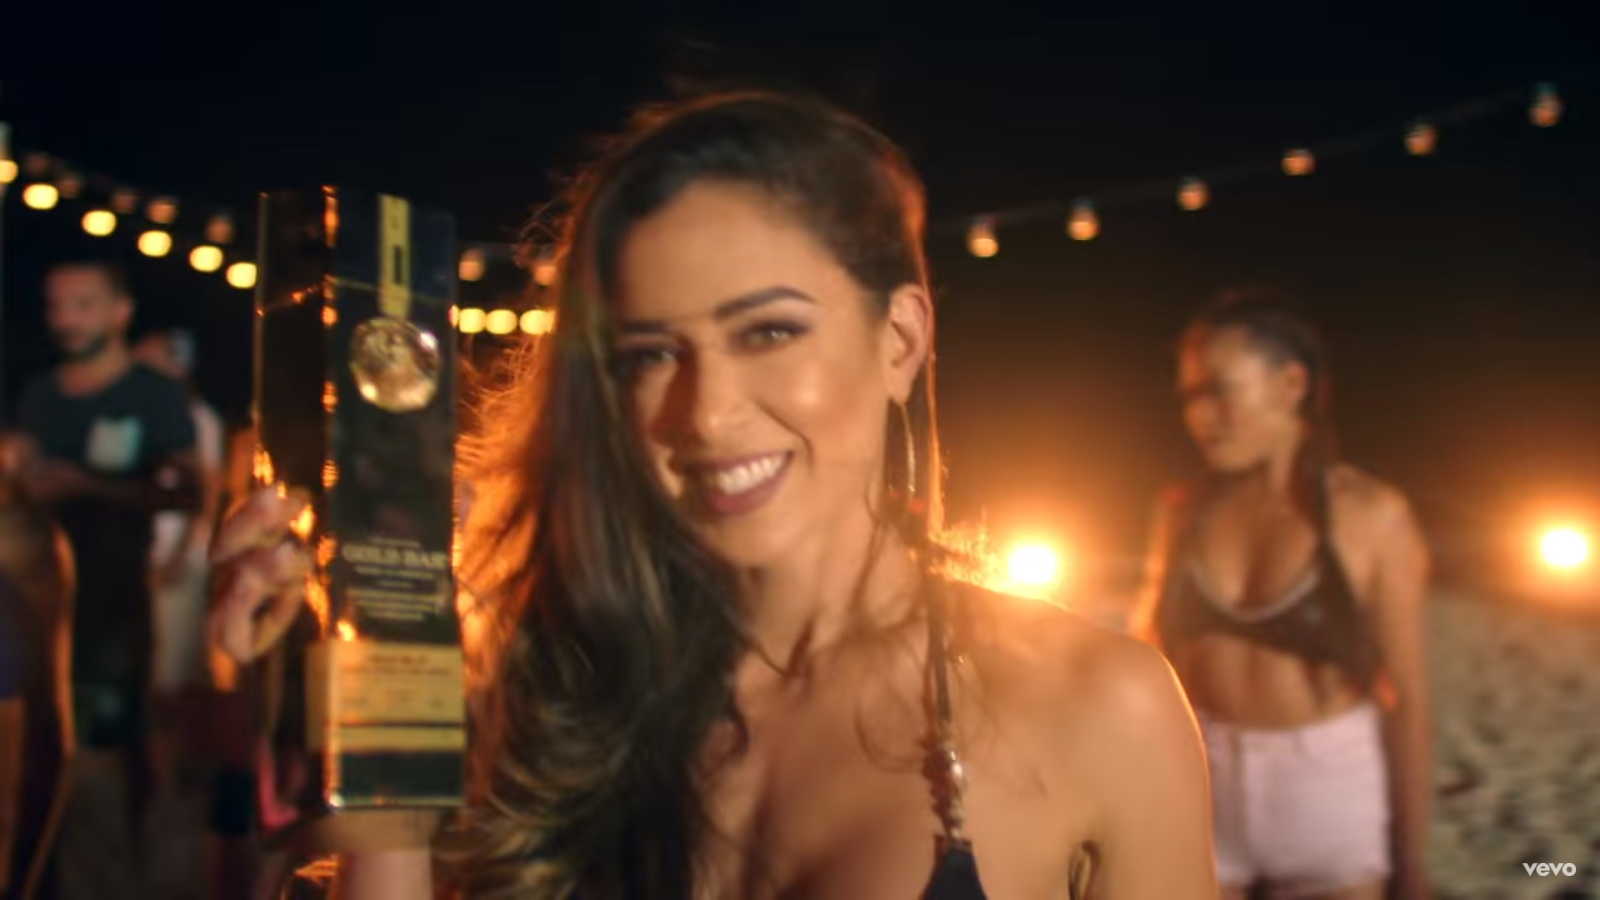 GOLD BAR Whiskey - Sean Paul - Body ft. Migos Music Video  Product Placement Review